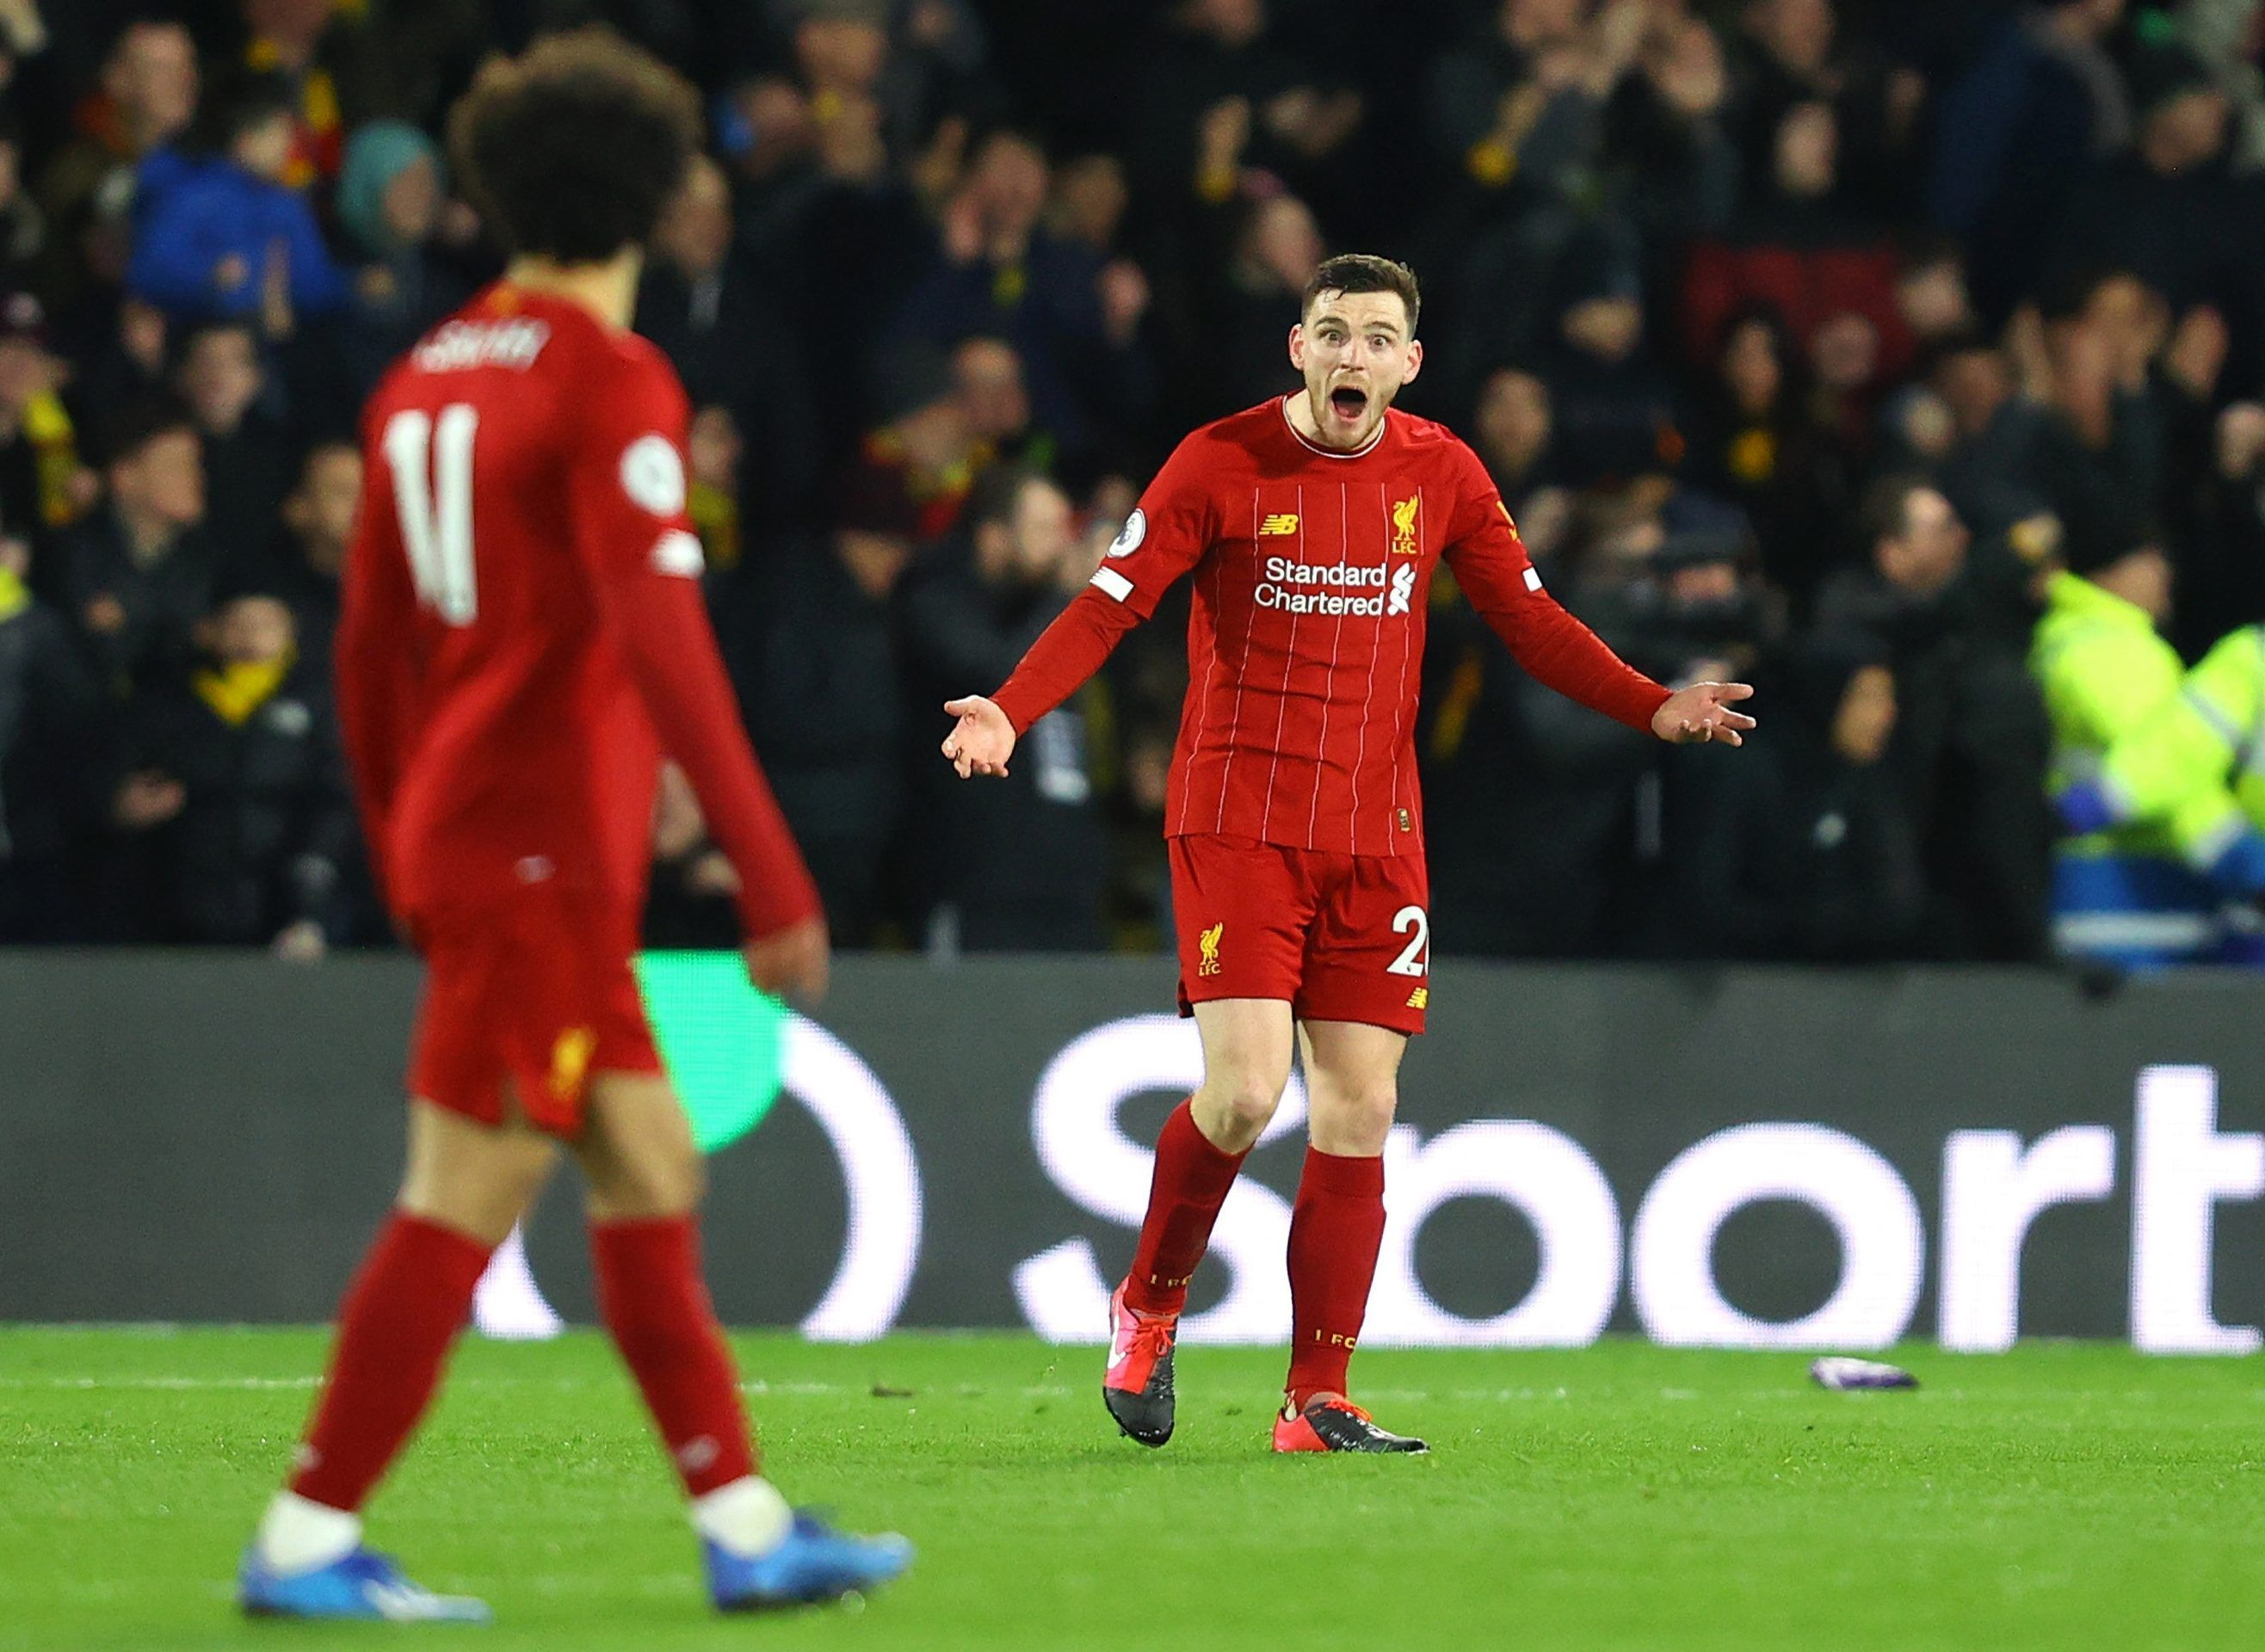 Liverpool vs Bournemouth FREE Live stream, TV channel